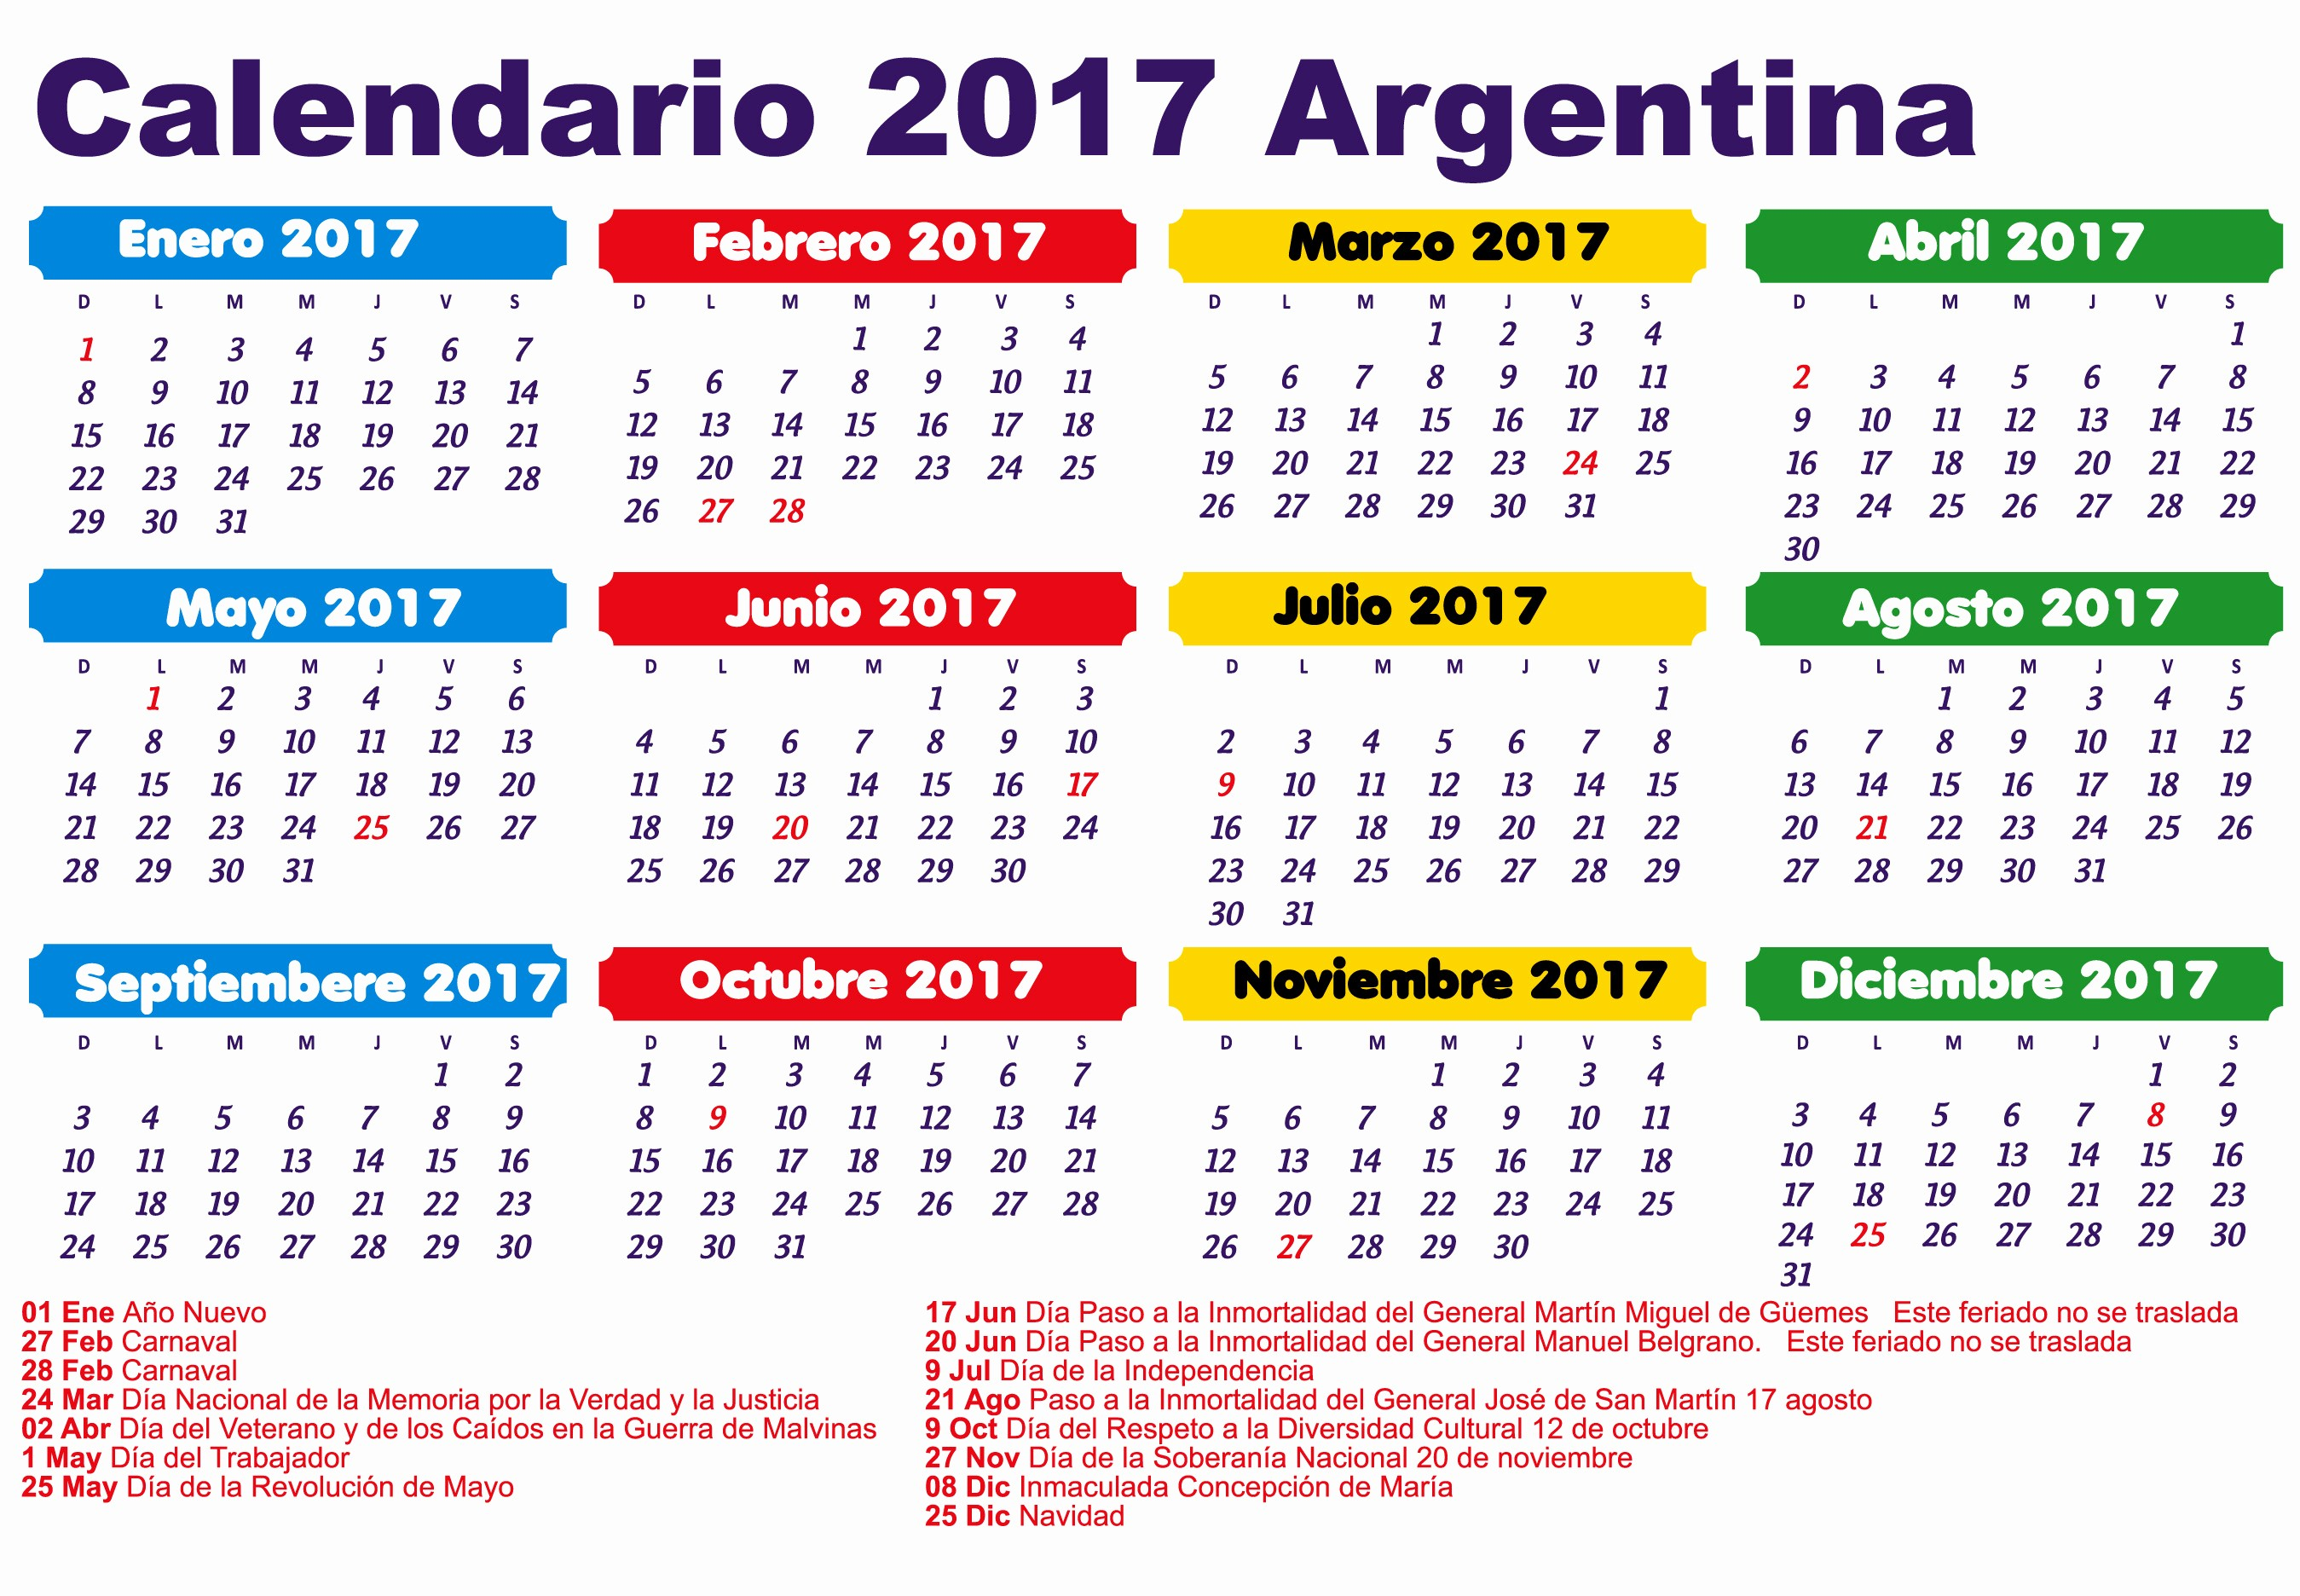 Calendario Anual 2017 Para Imprimir Awesome Calendario Anual 2017